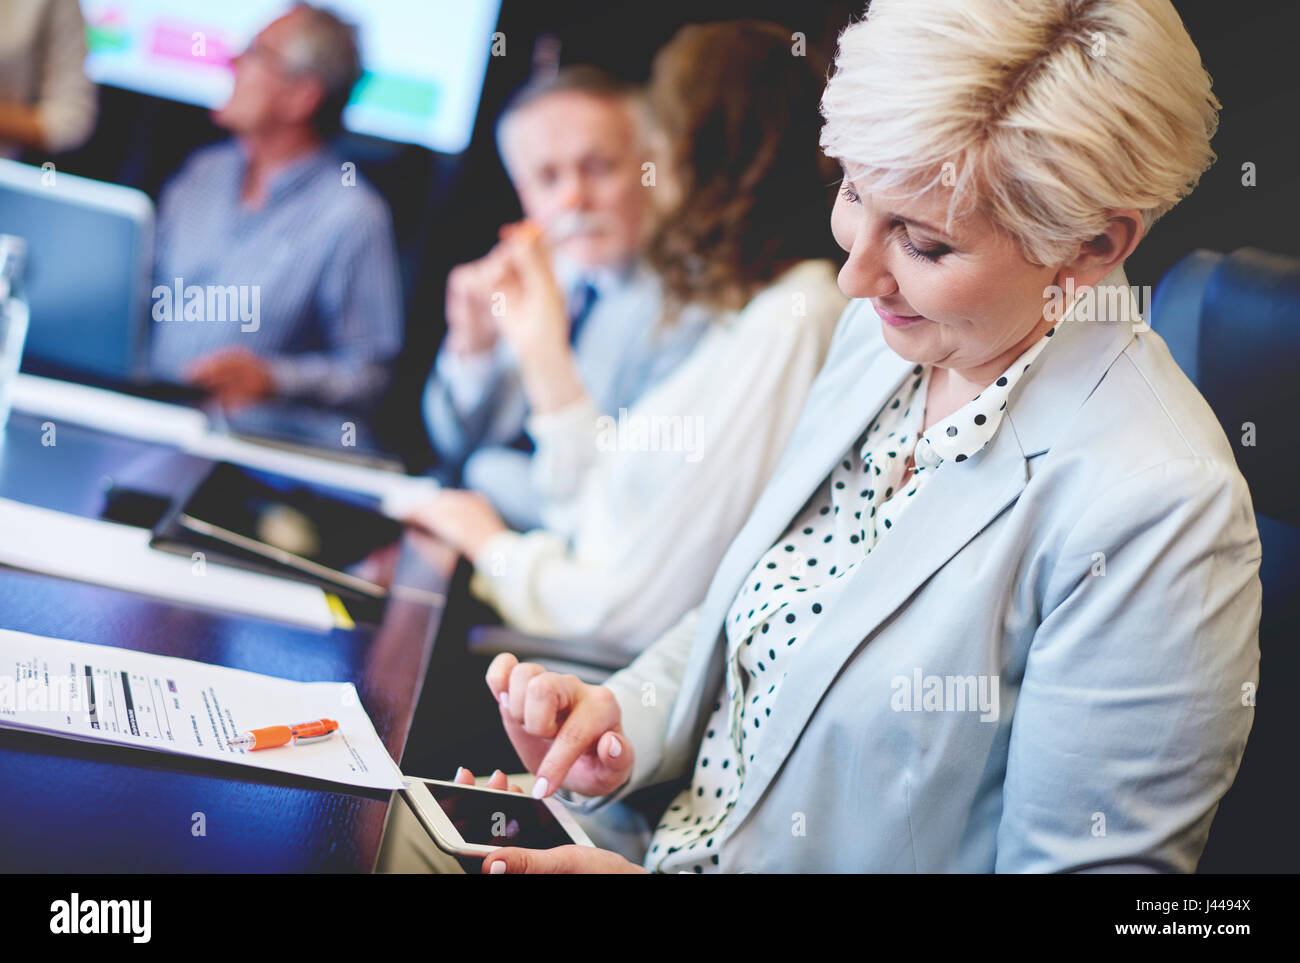 Female coworker using cell phone - Stock Image